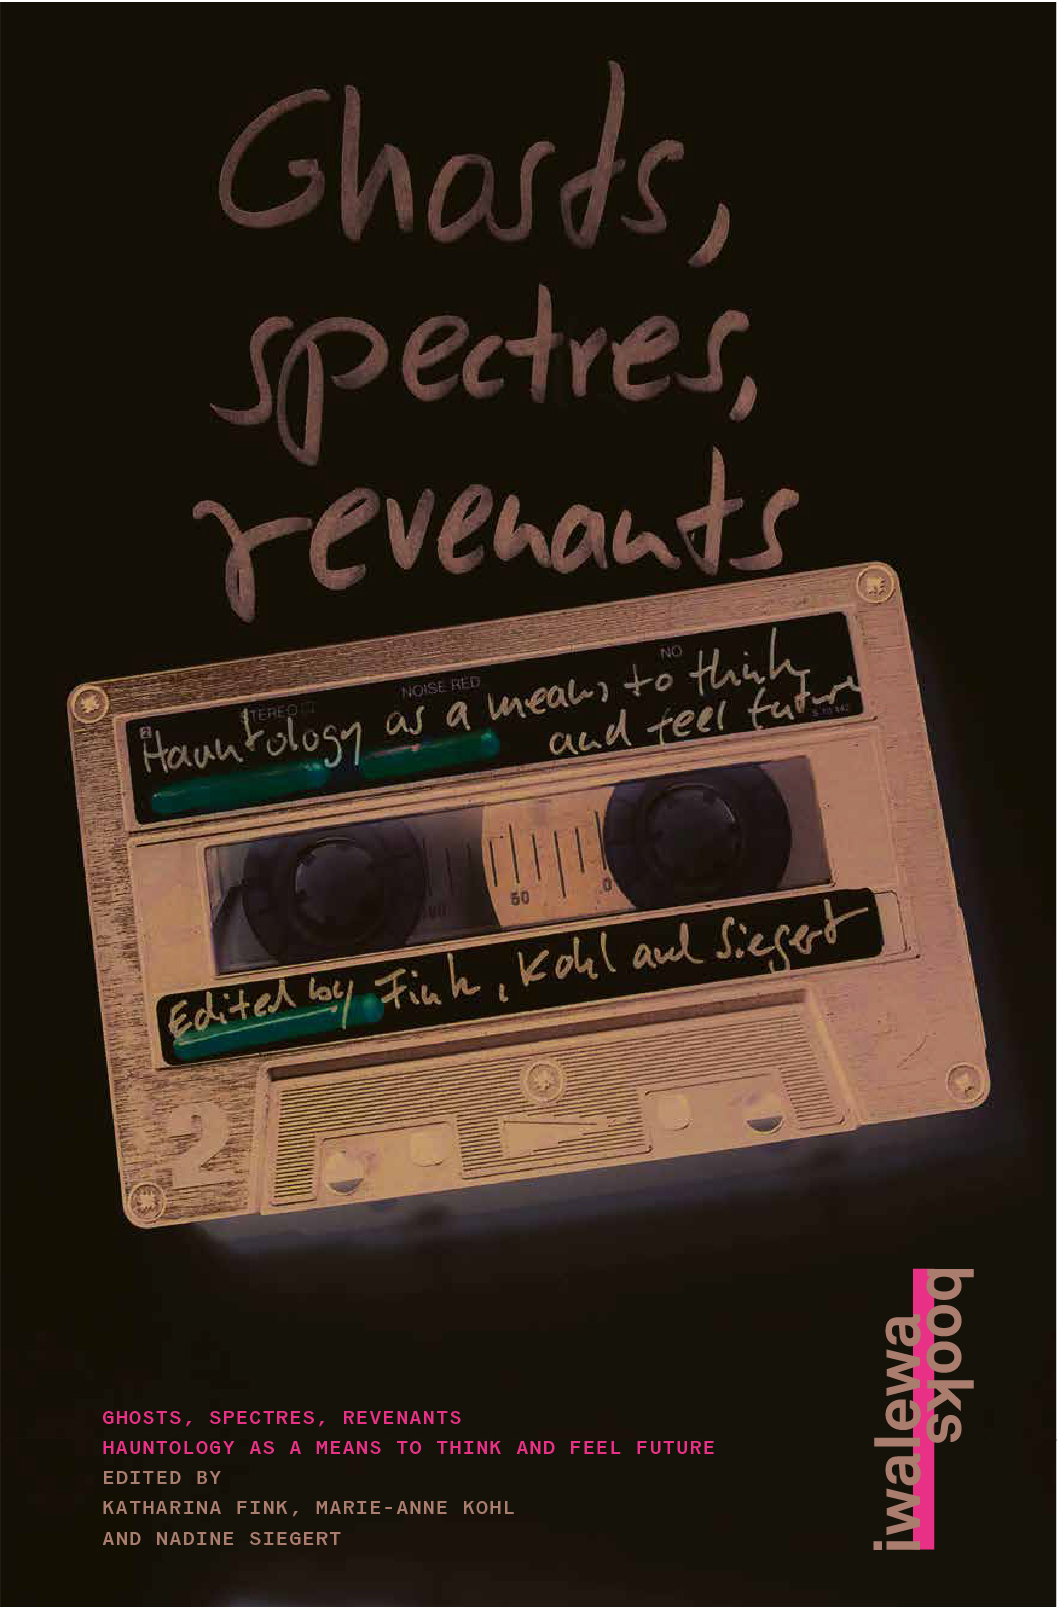 Ghosts, spectres, revenants: Hauntology as a means to think and feel future